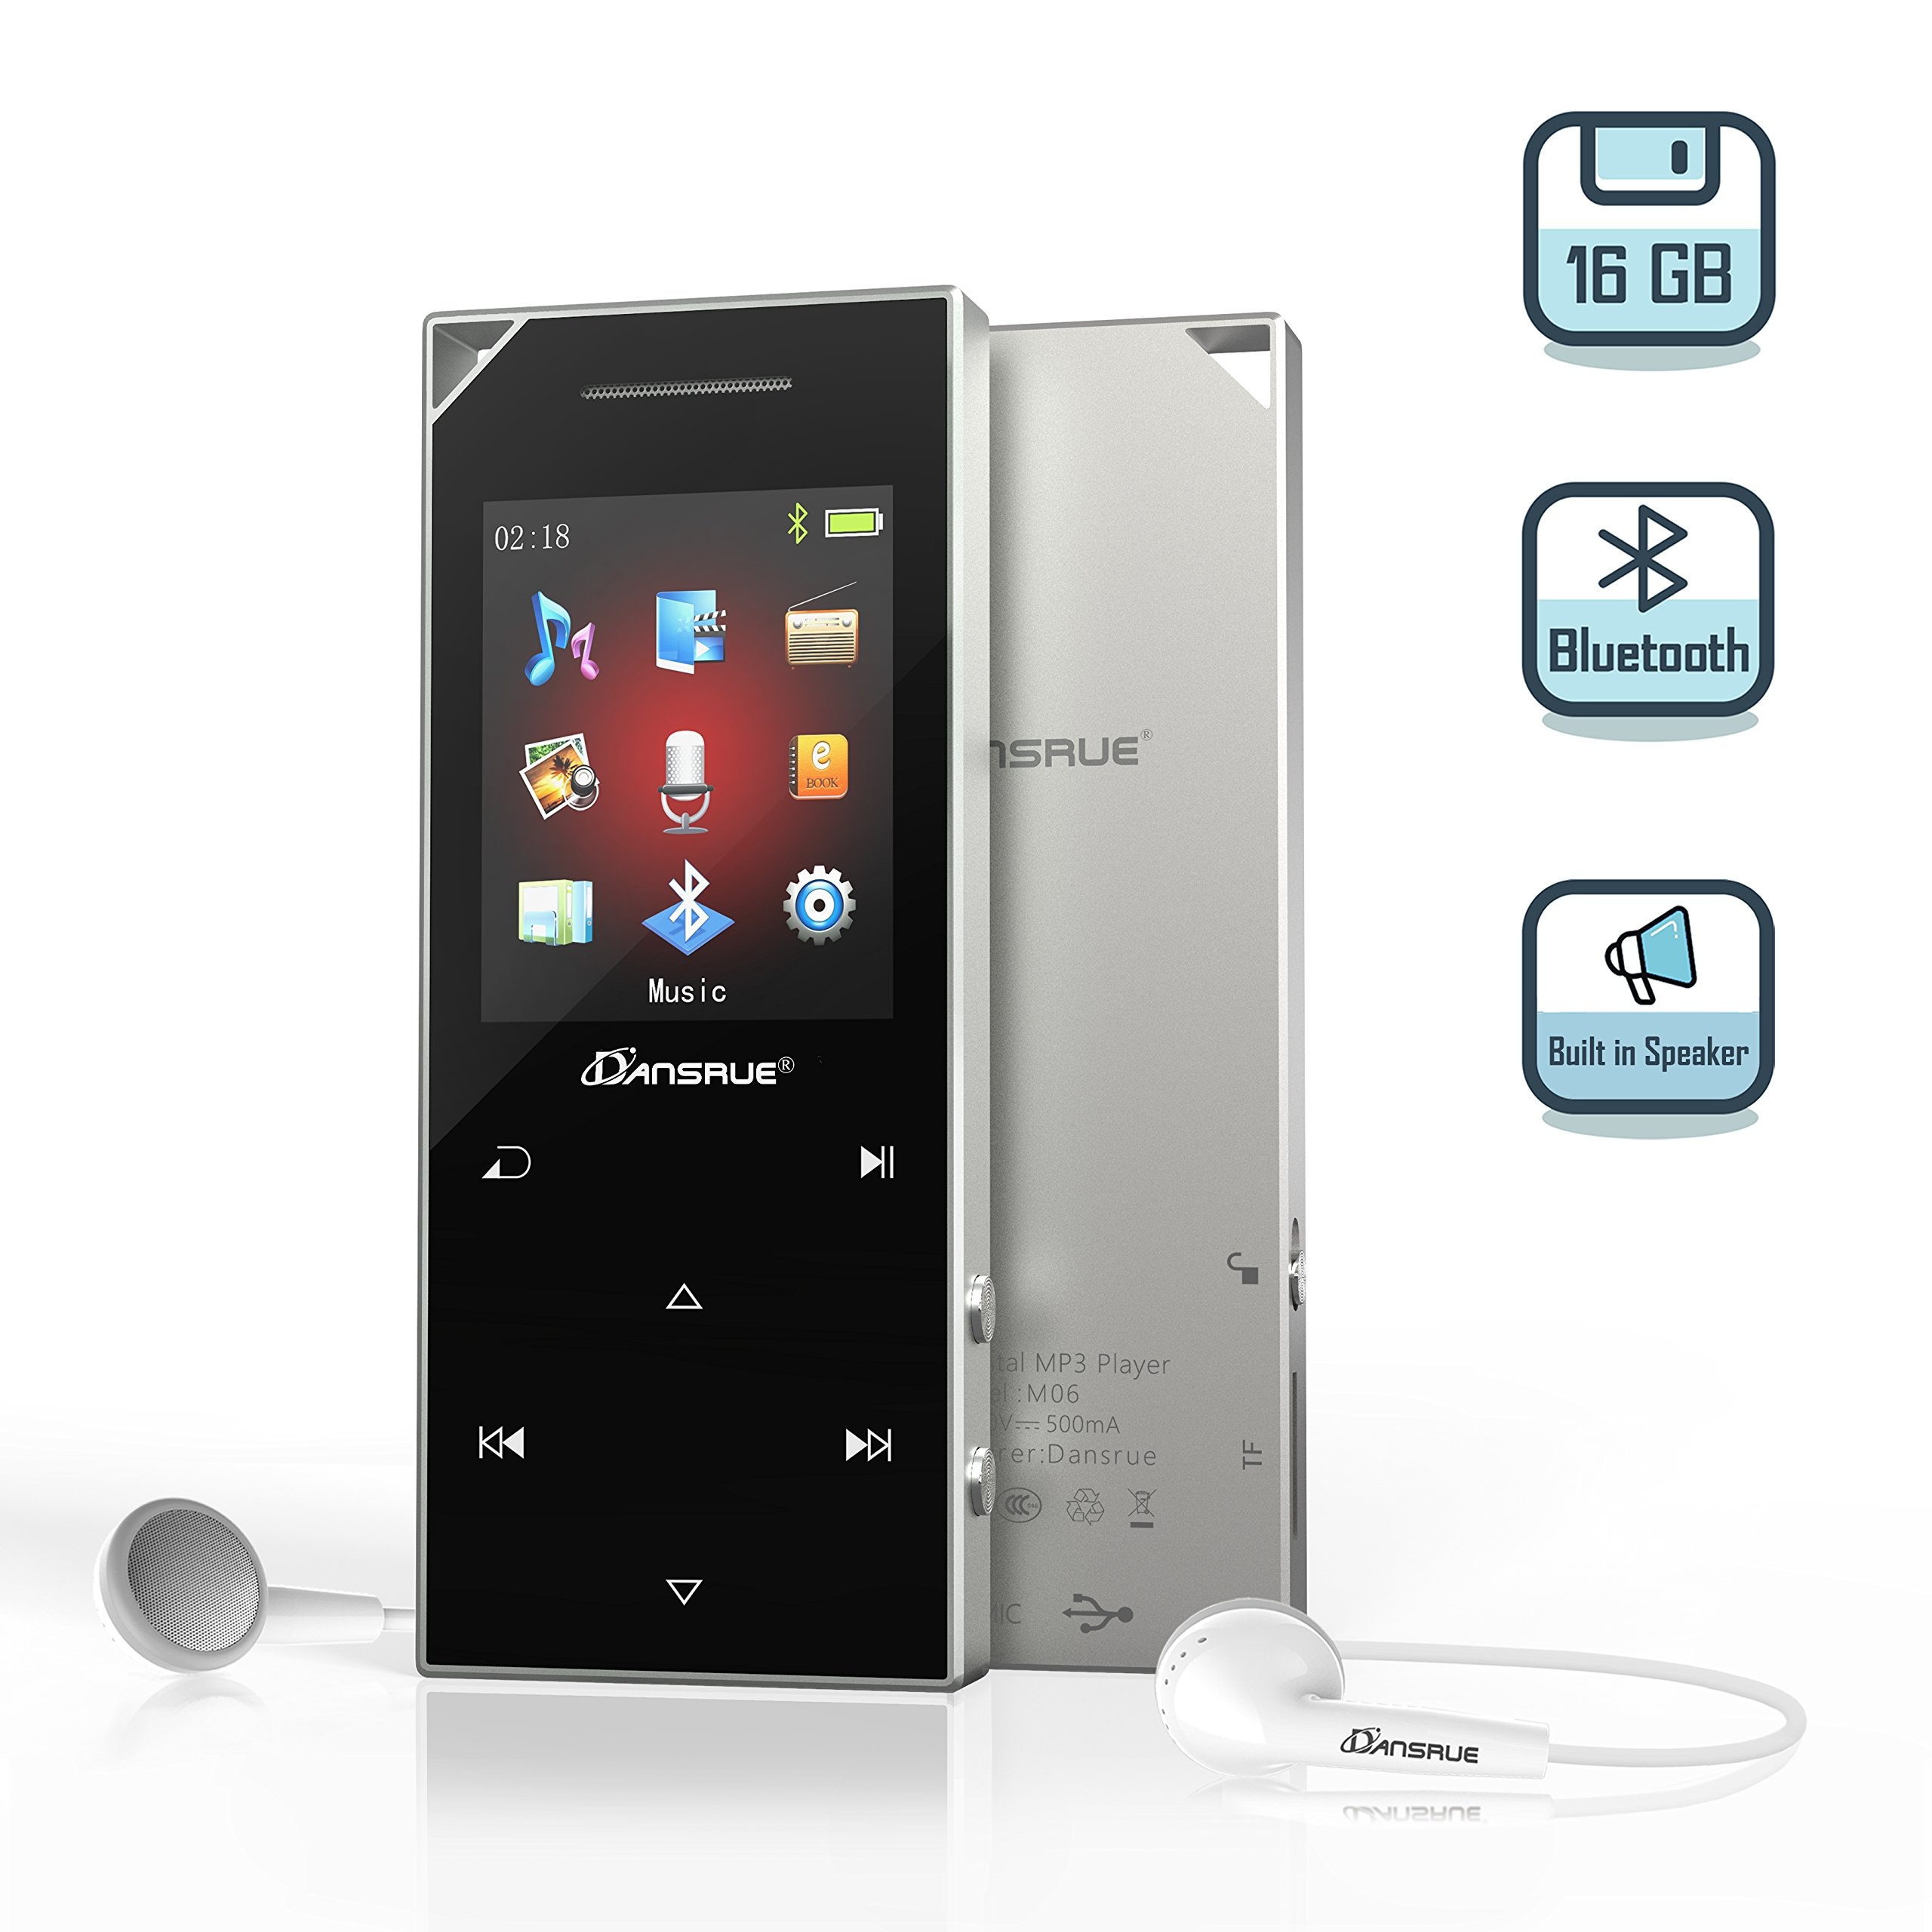 16GB Bluetooth 4.0 MP3 Player with Speaker, Dansrue Portable Lossless MP3 Music Player Metal Touch Button with FM Radio Voice Recorder,Support up to 128 GB, Black